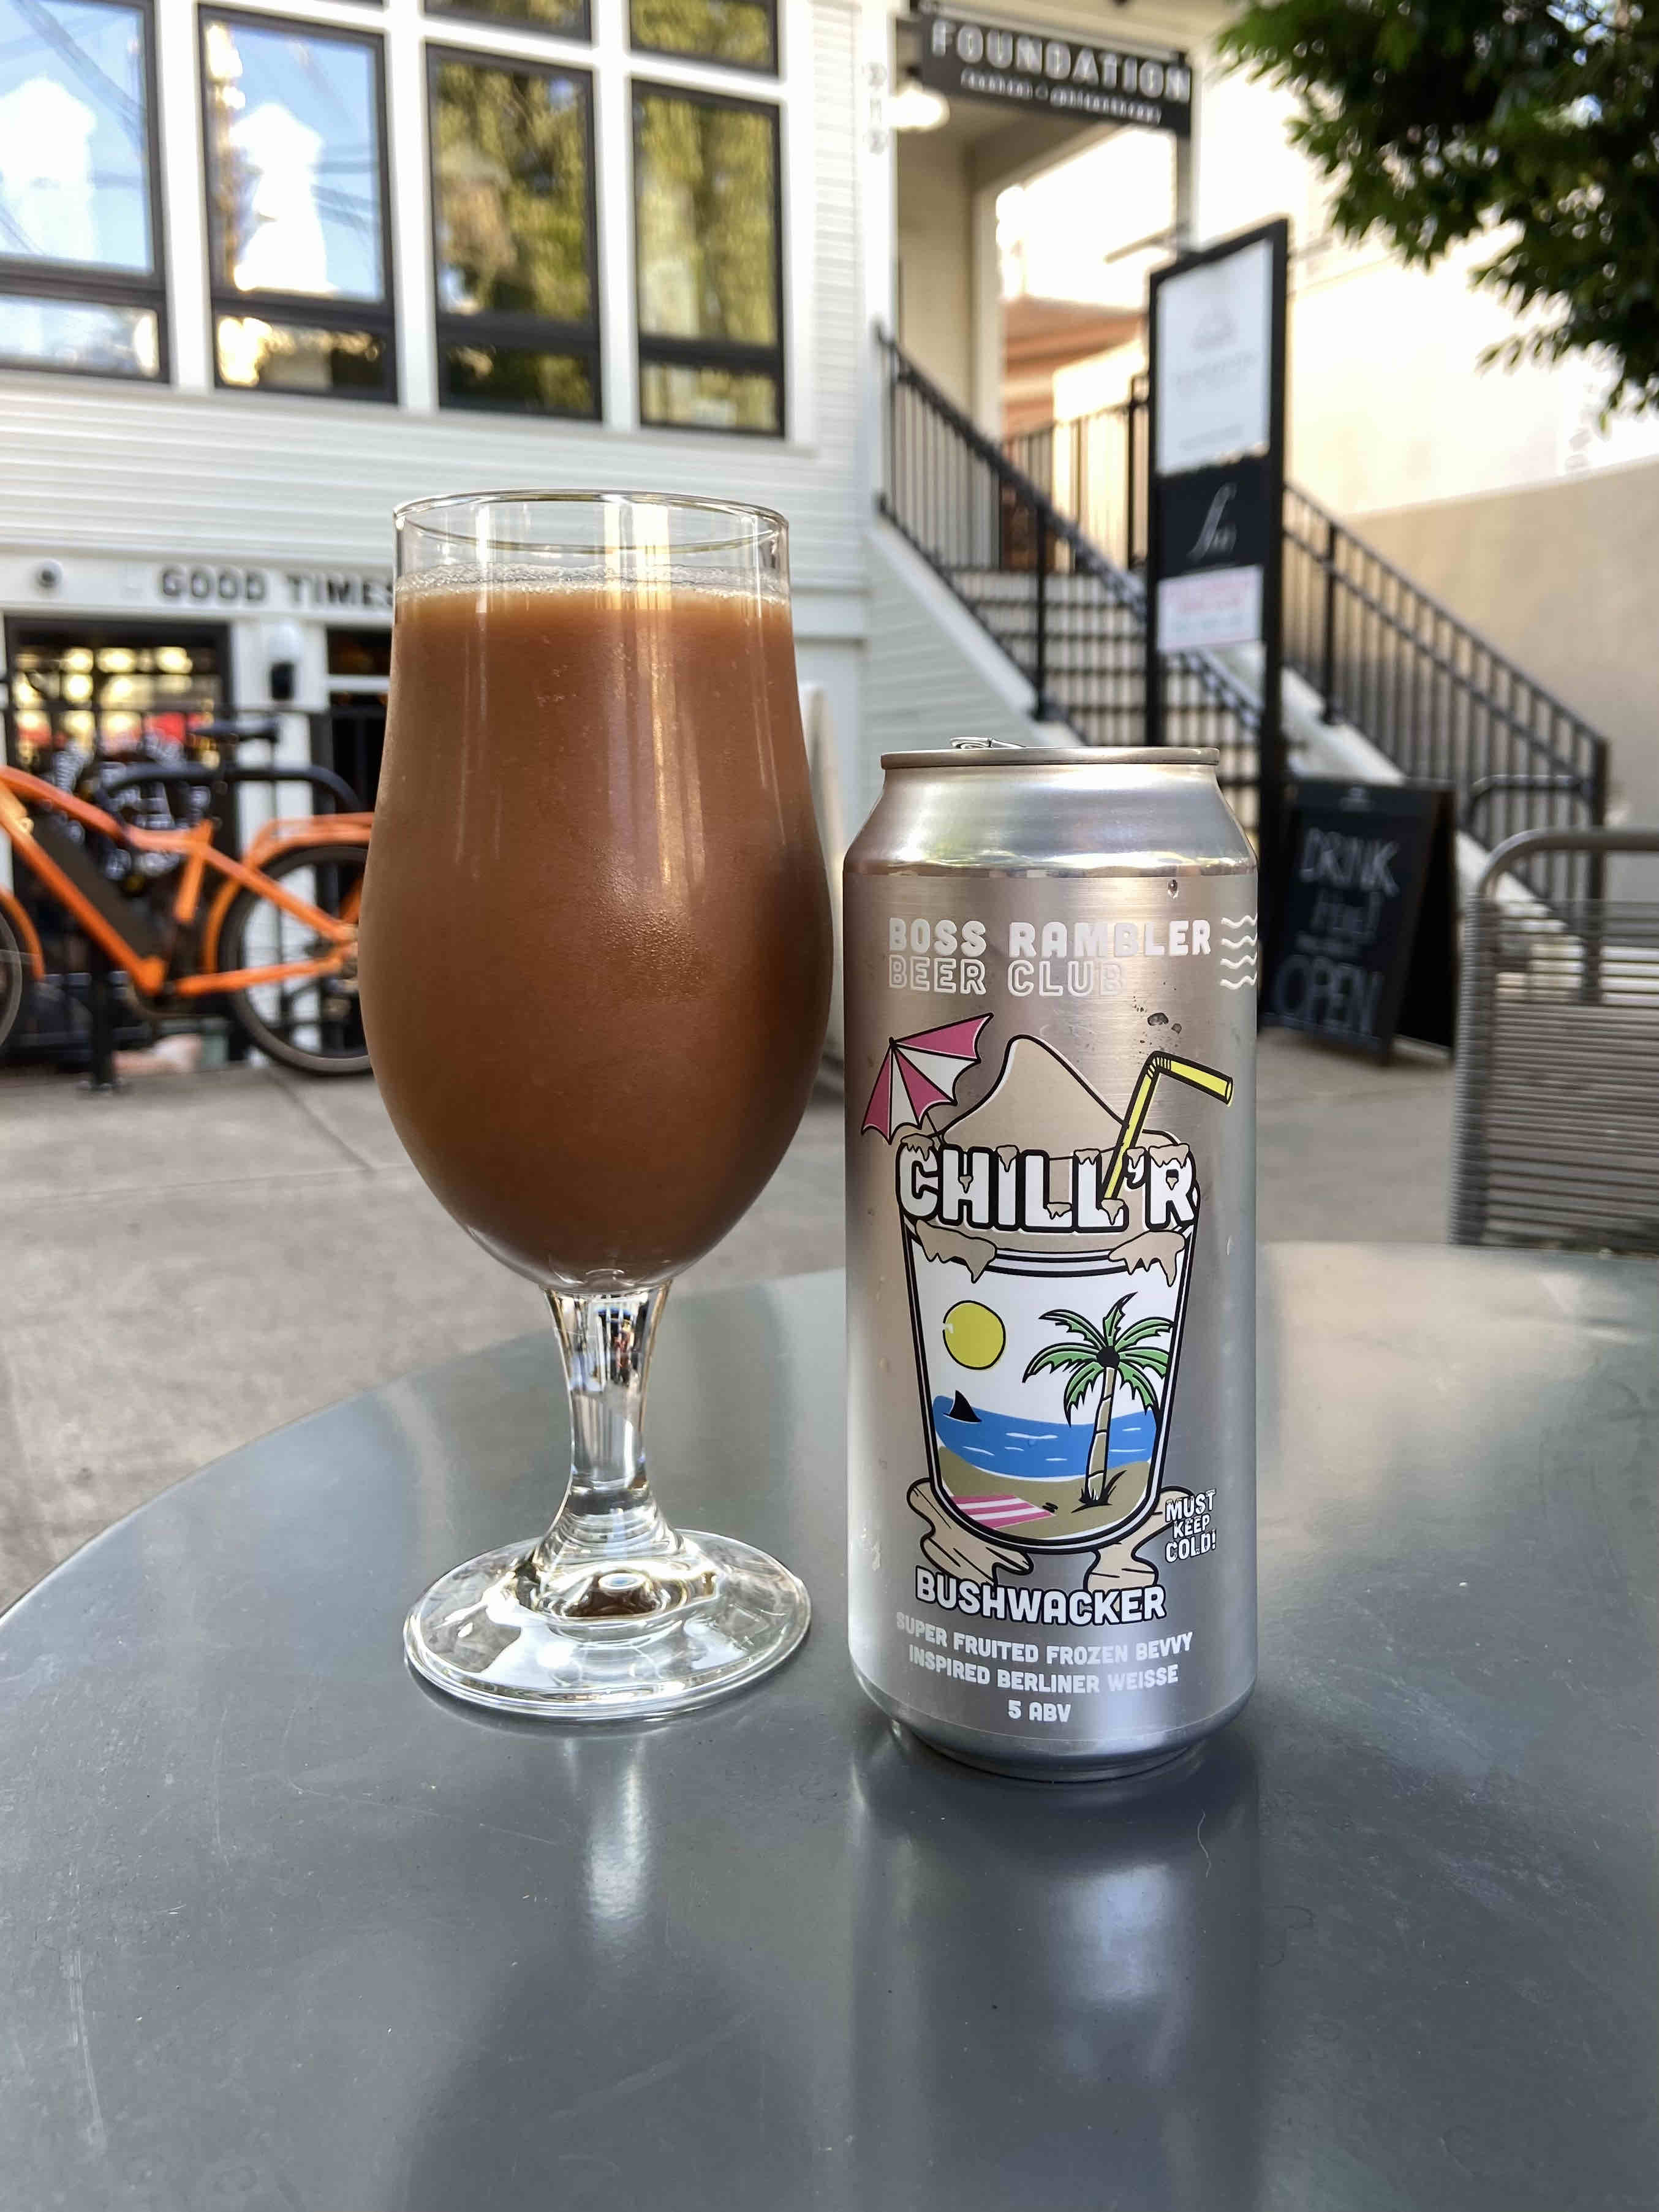 Chill'r Bushwacker from Boss Rambler Beer Club is a take on the popular frozen cocktail that's popular in the deep south.